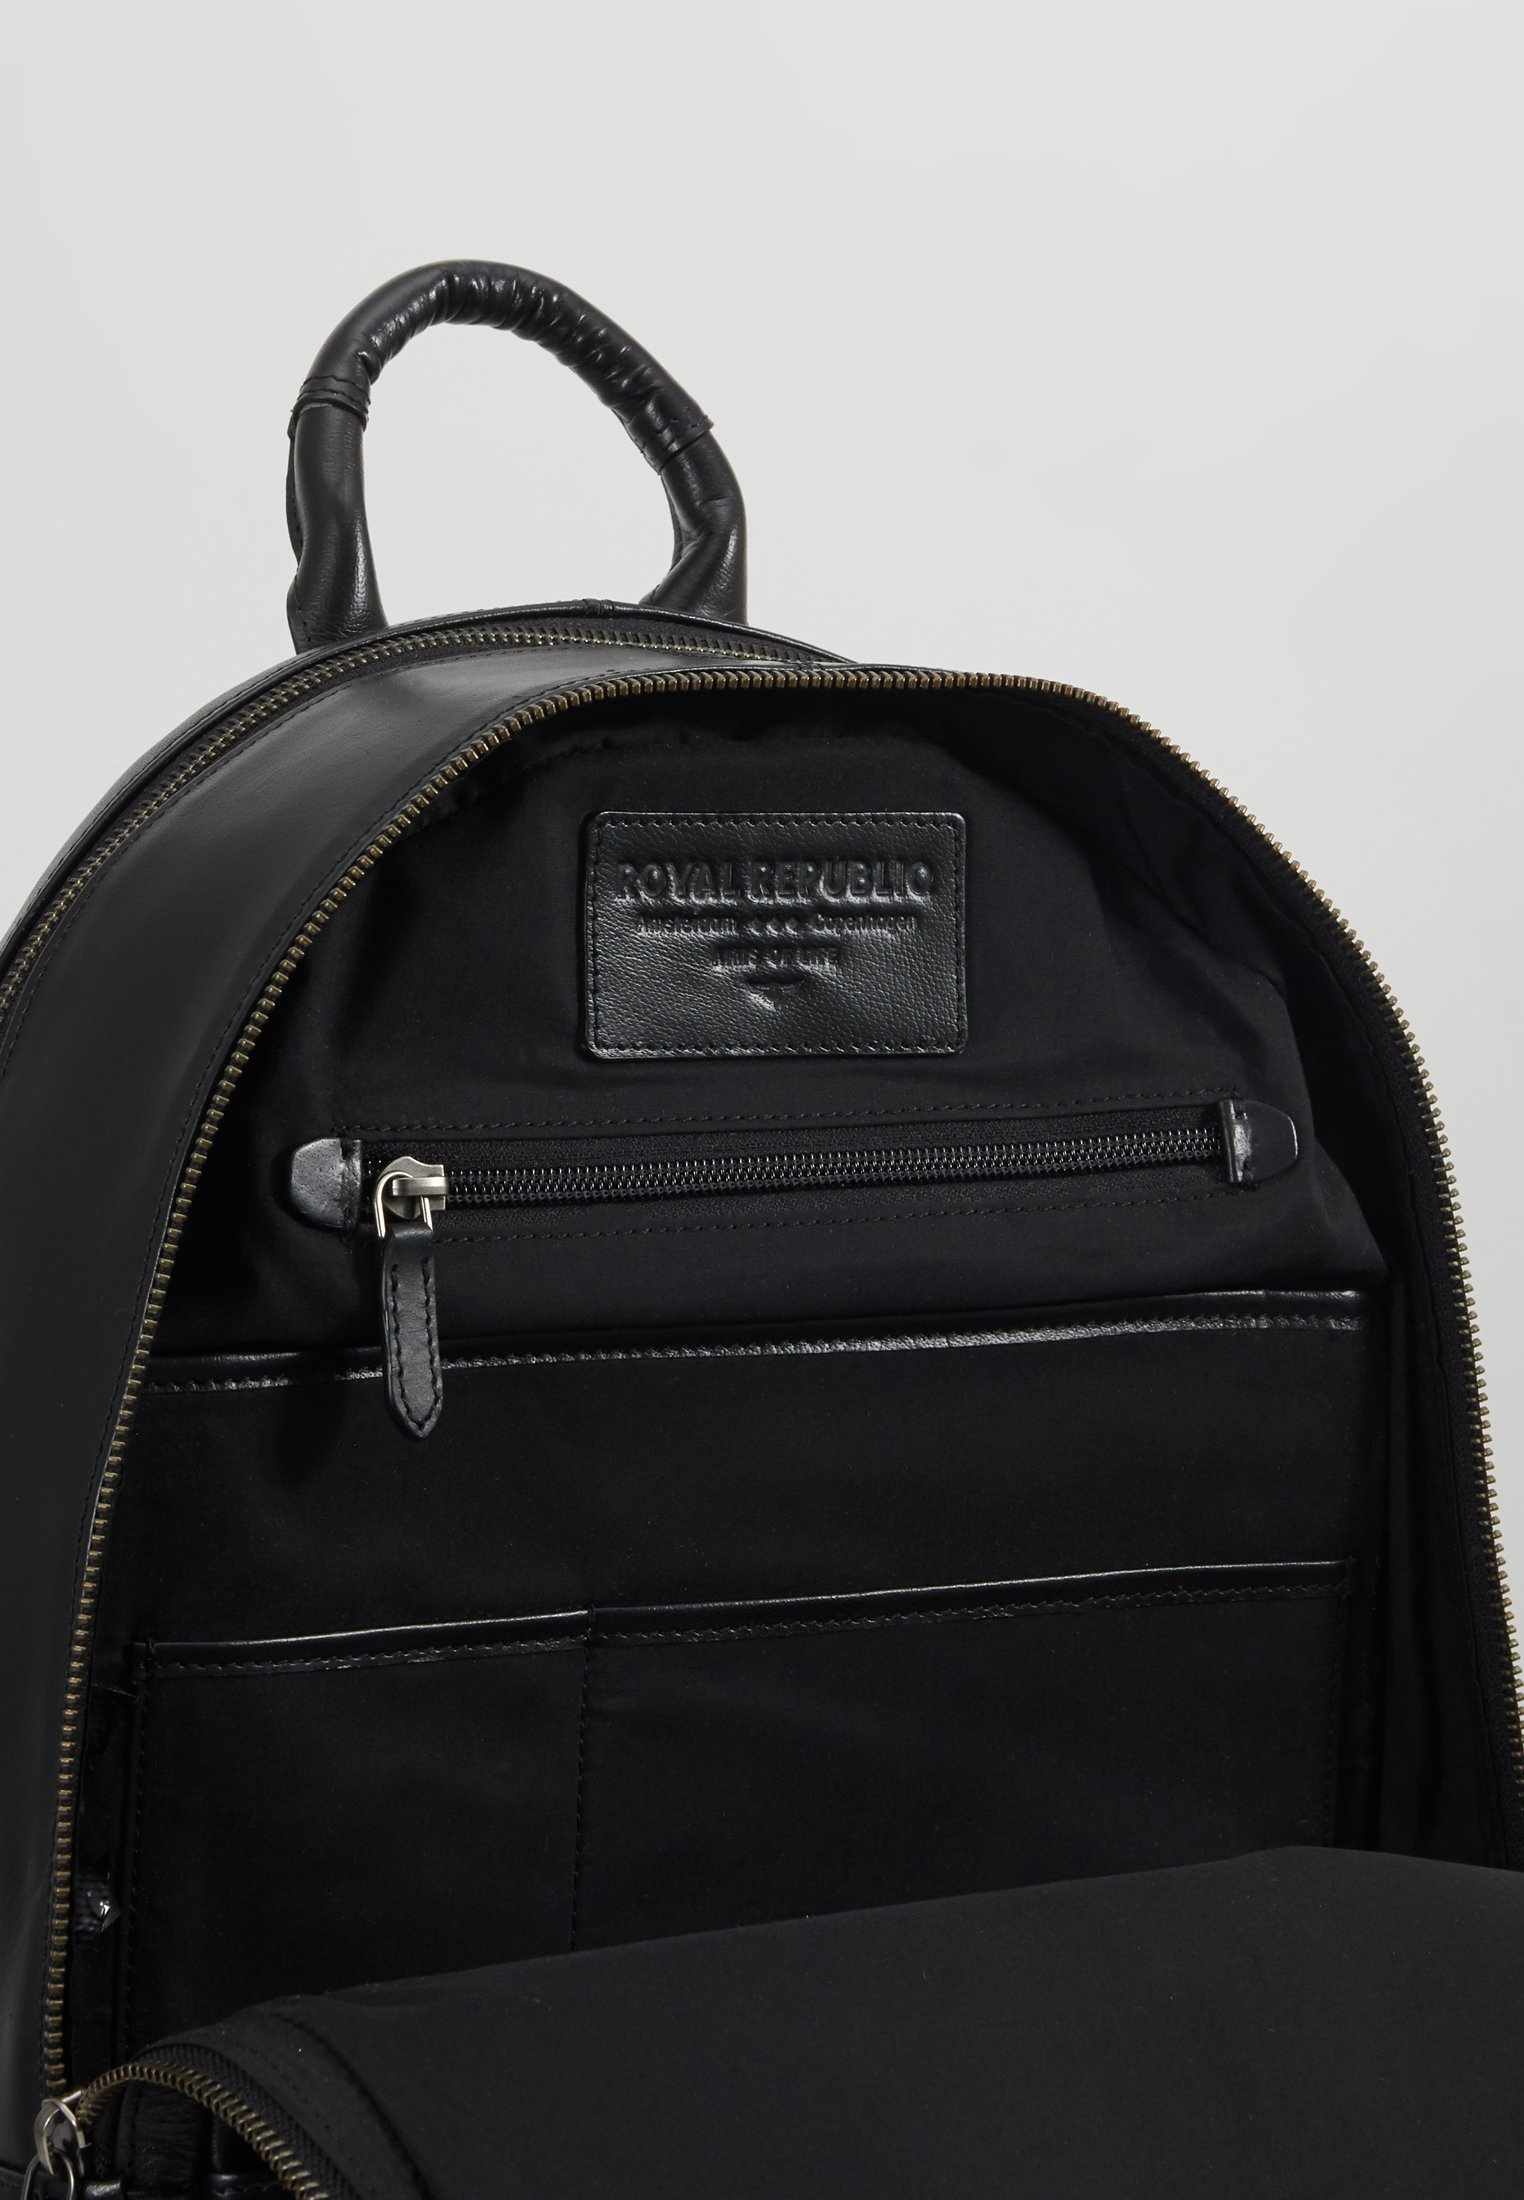 Royal RepubliQ EXPLORER BACKPACK - Tagesrucksack - black/schwarz - Herrentaschen TeGGK